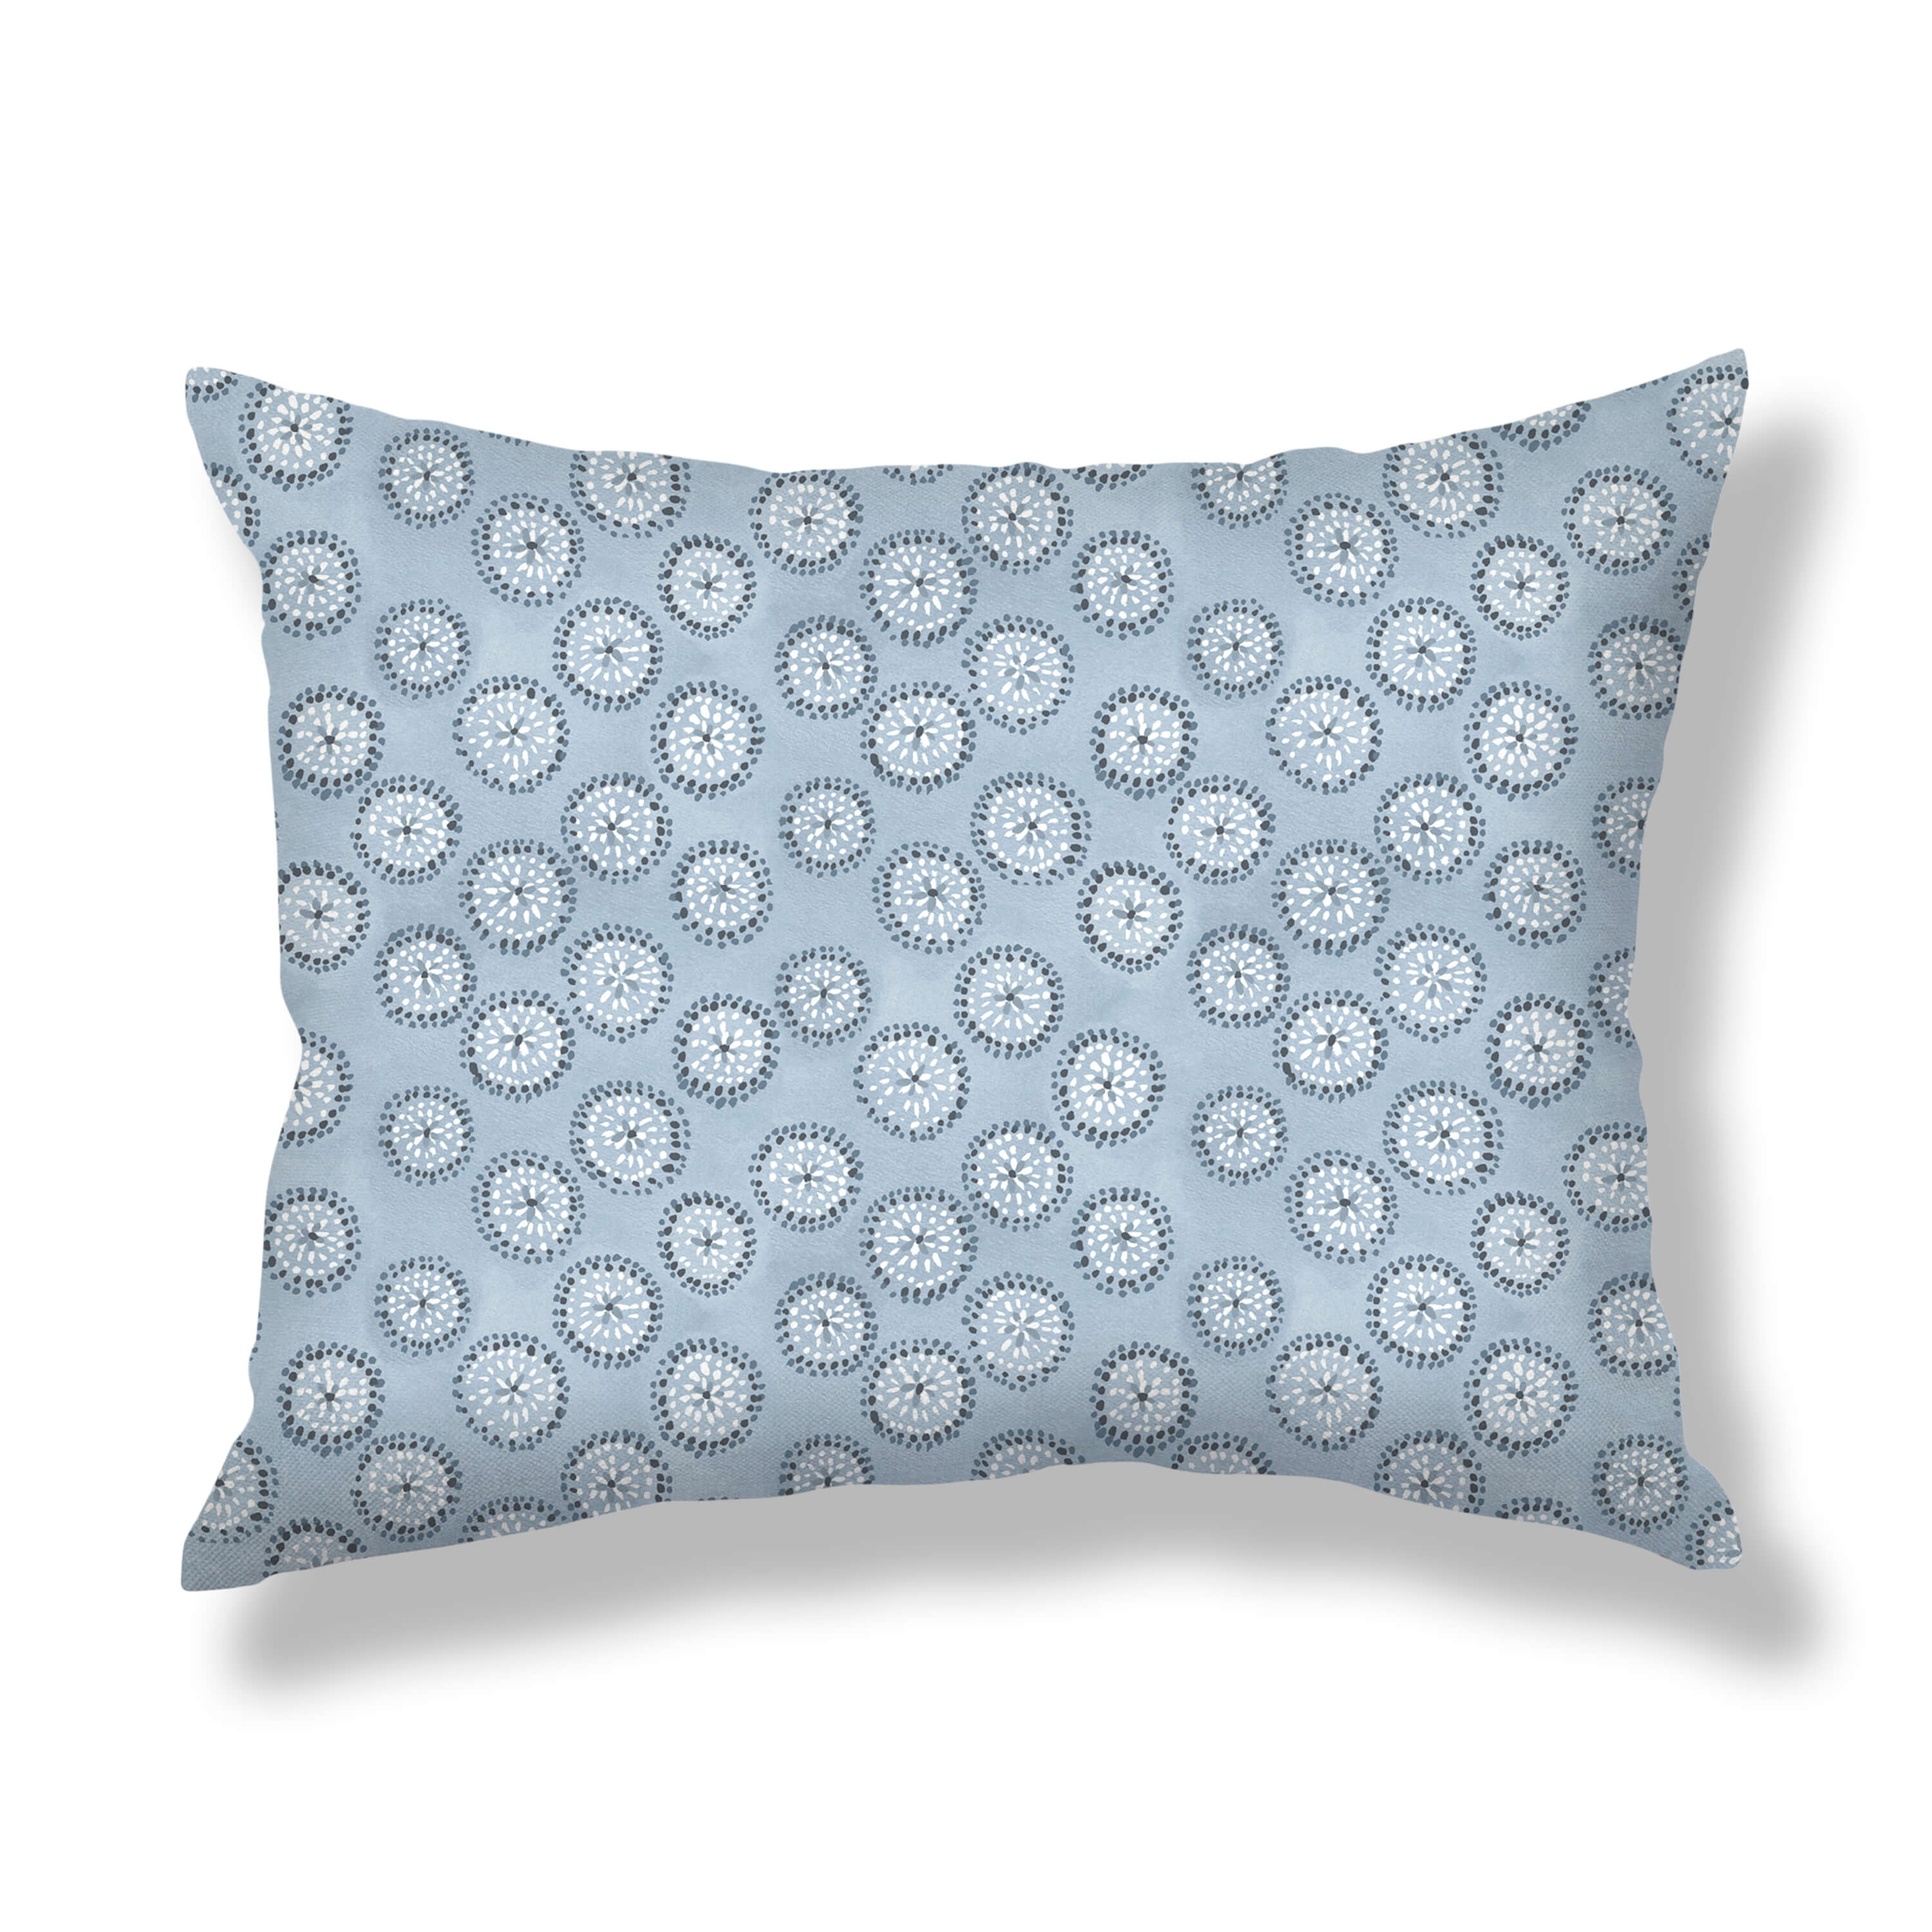 Dotted Floral Pillows in Blue-Gray